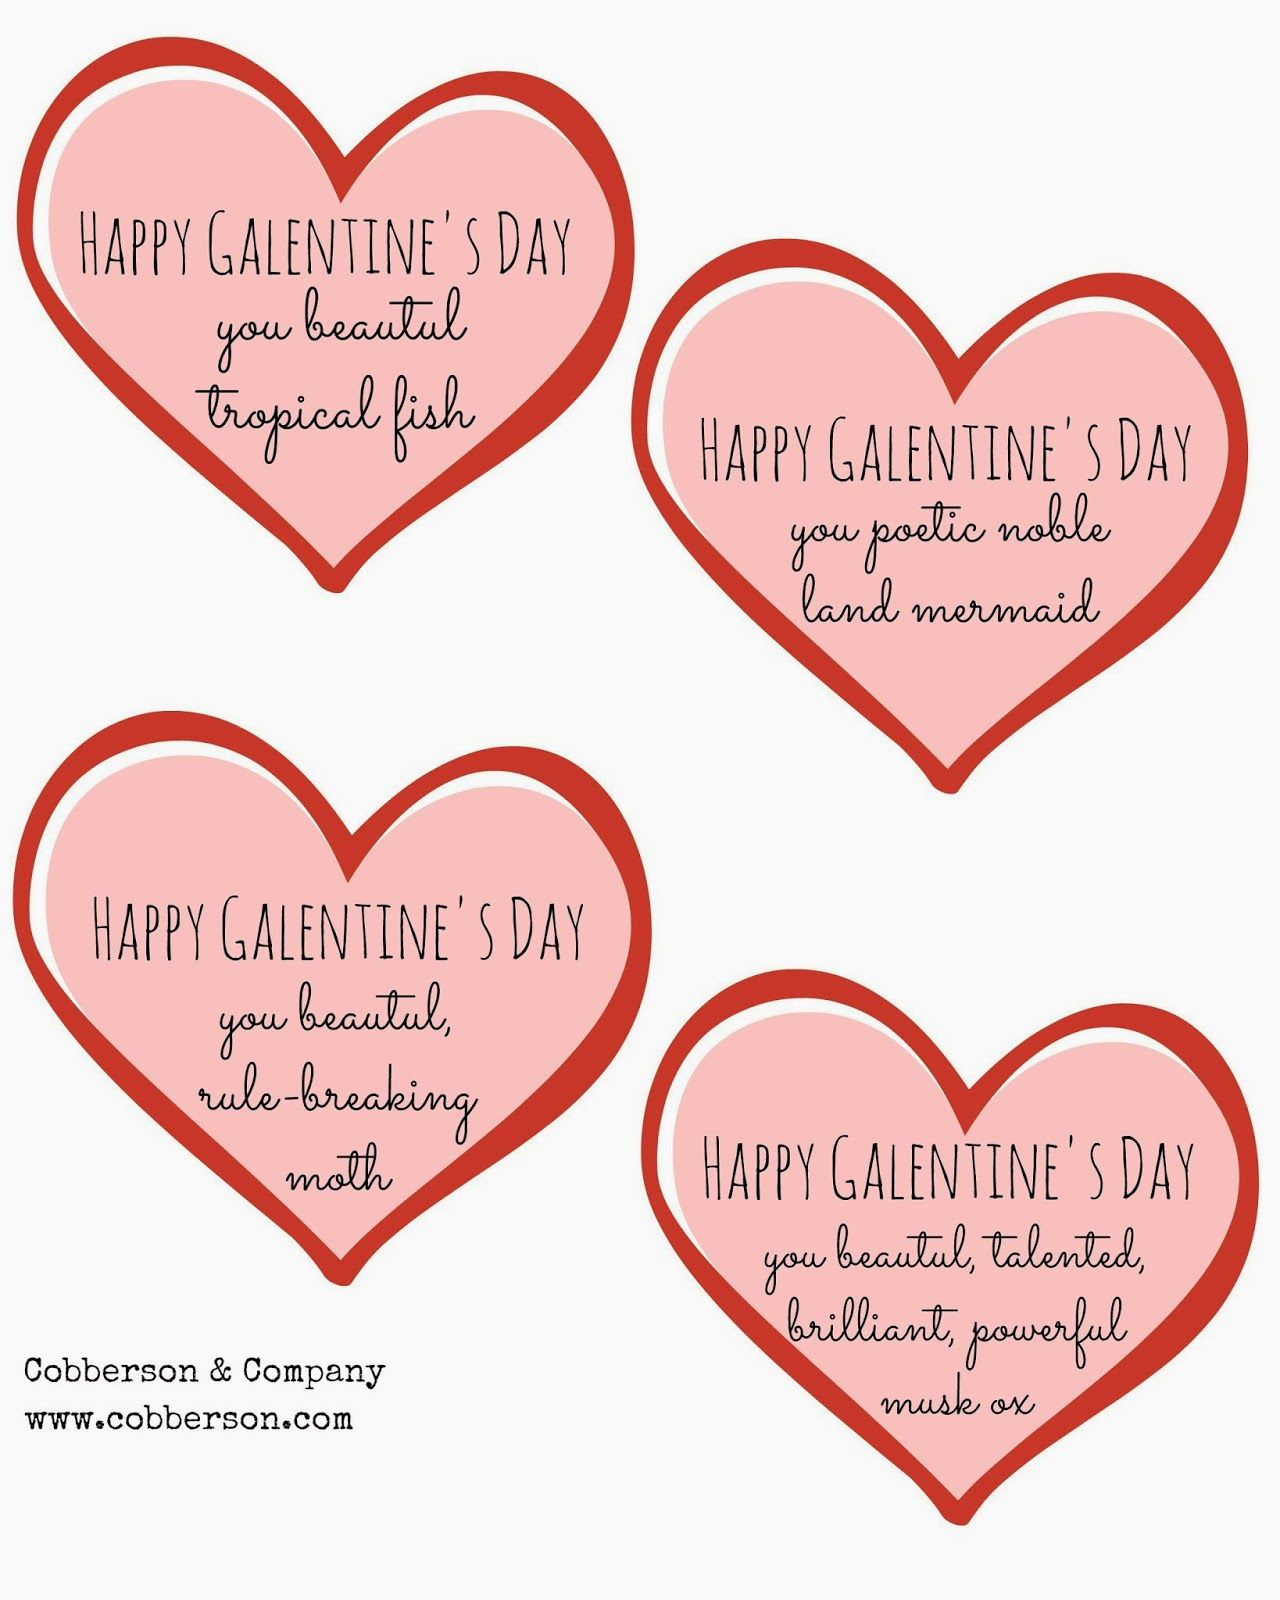 Happy Galentine's Day, you noble DIYer! + Free Printable ...